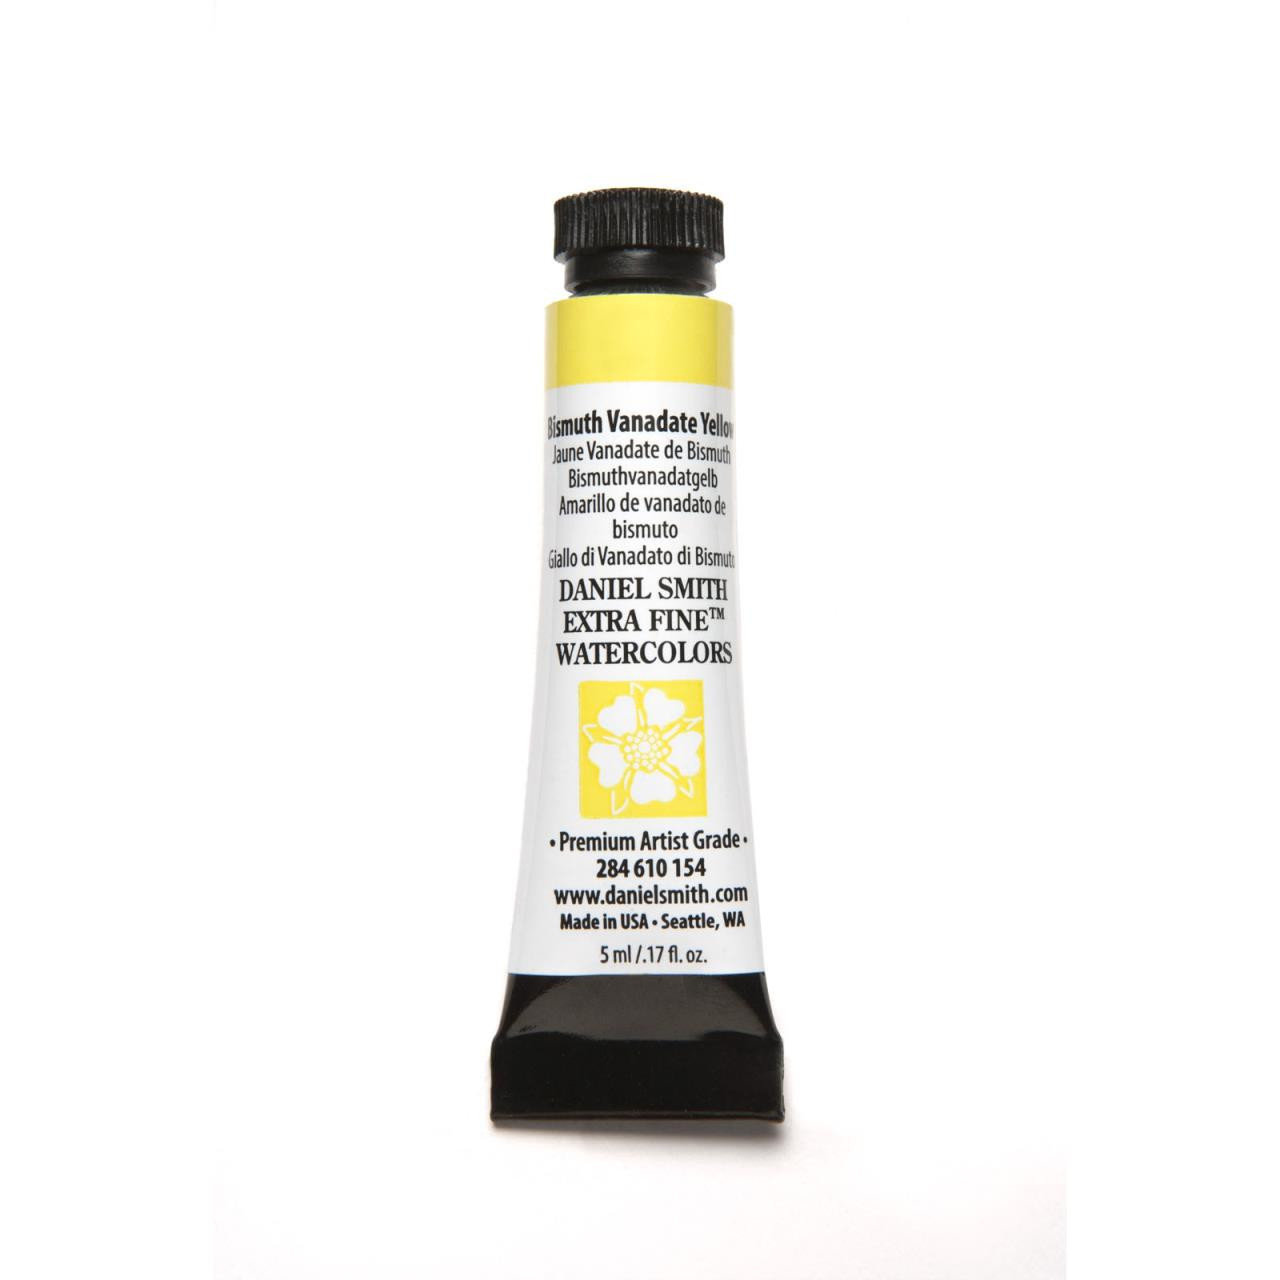 Bismuth Vanadate Yellow, DANIEL SMITH Extra Fine Watercolors 5ml Tubes -